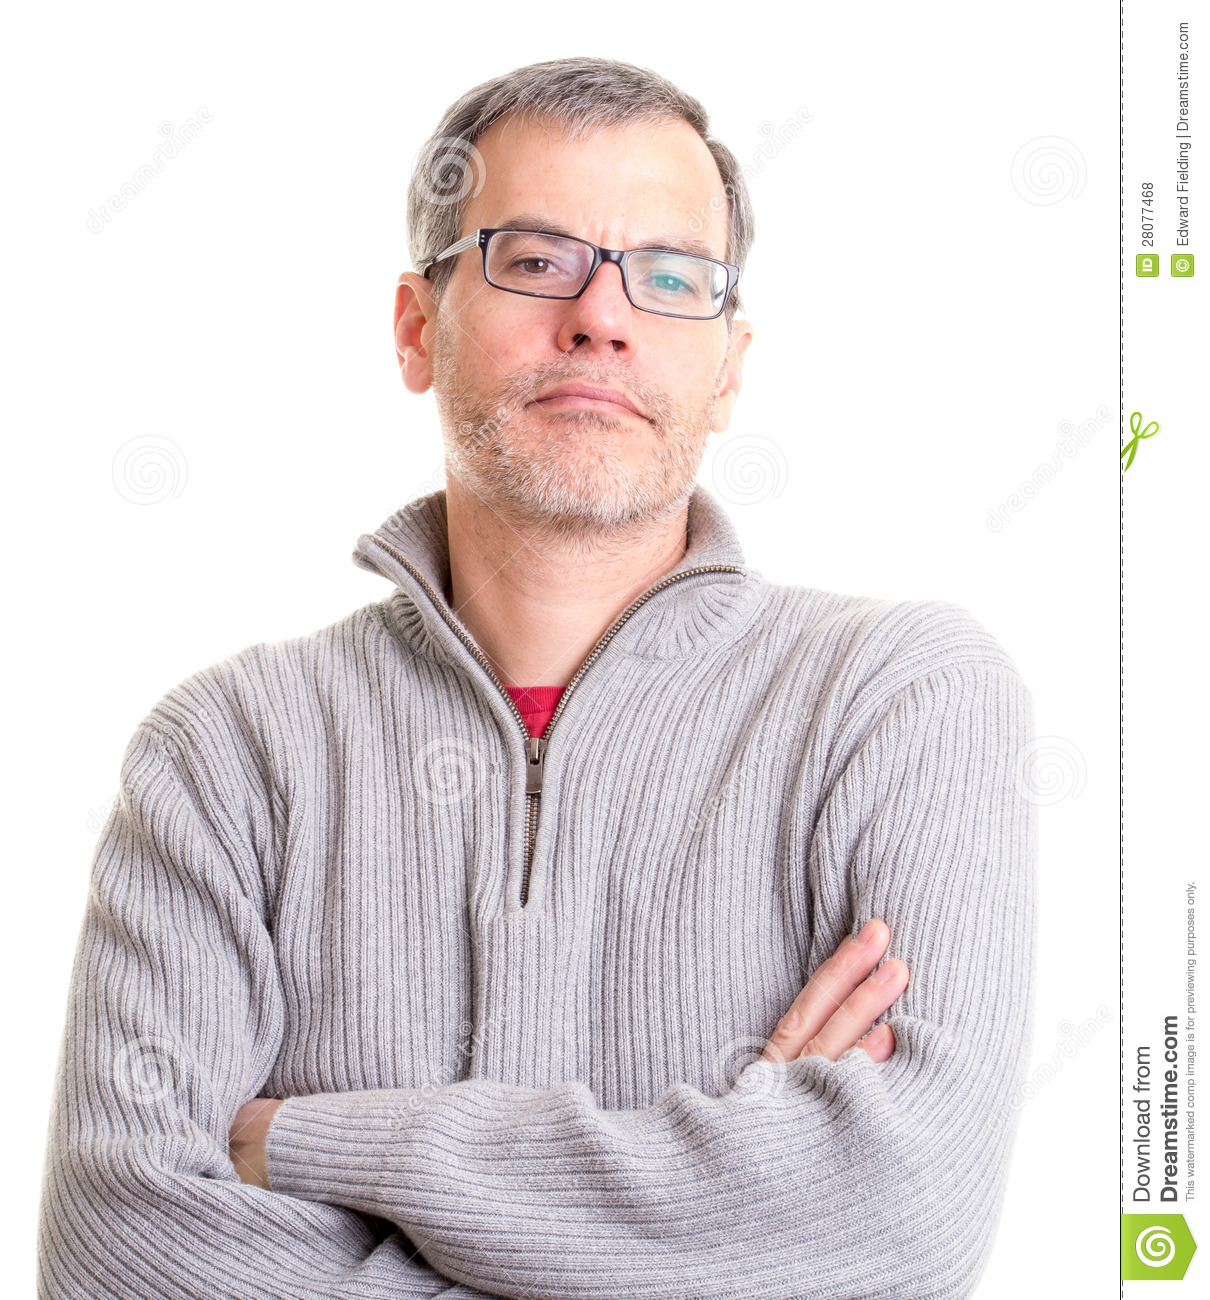 online dating for middle aged men A study of online dating finds that the early stages of courting are all  the profile  of a man 55 or older compared with a man her own age.